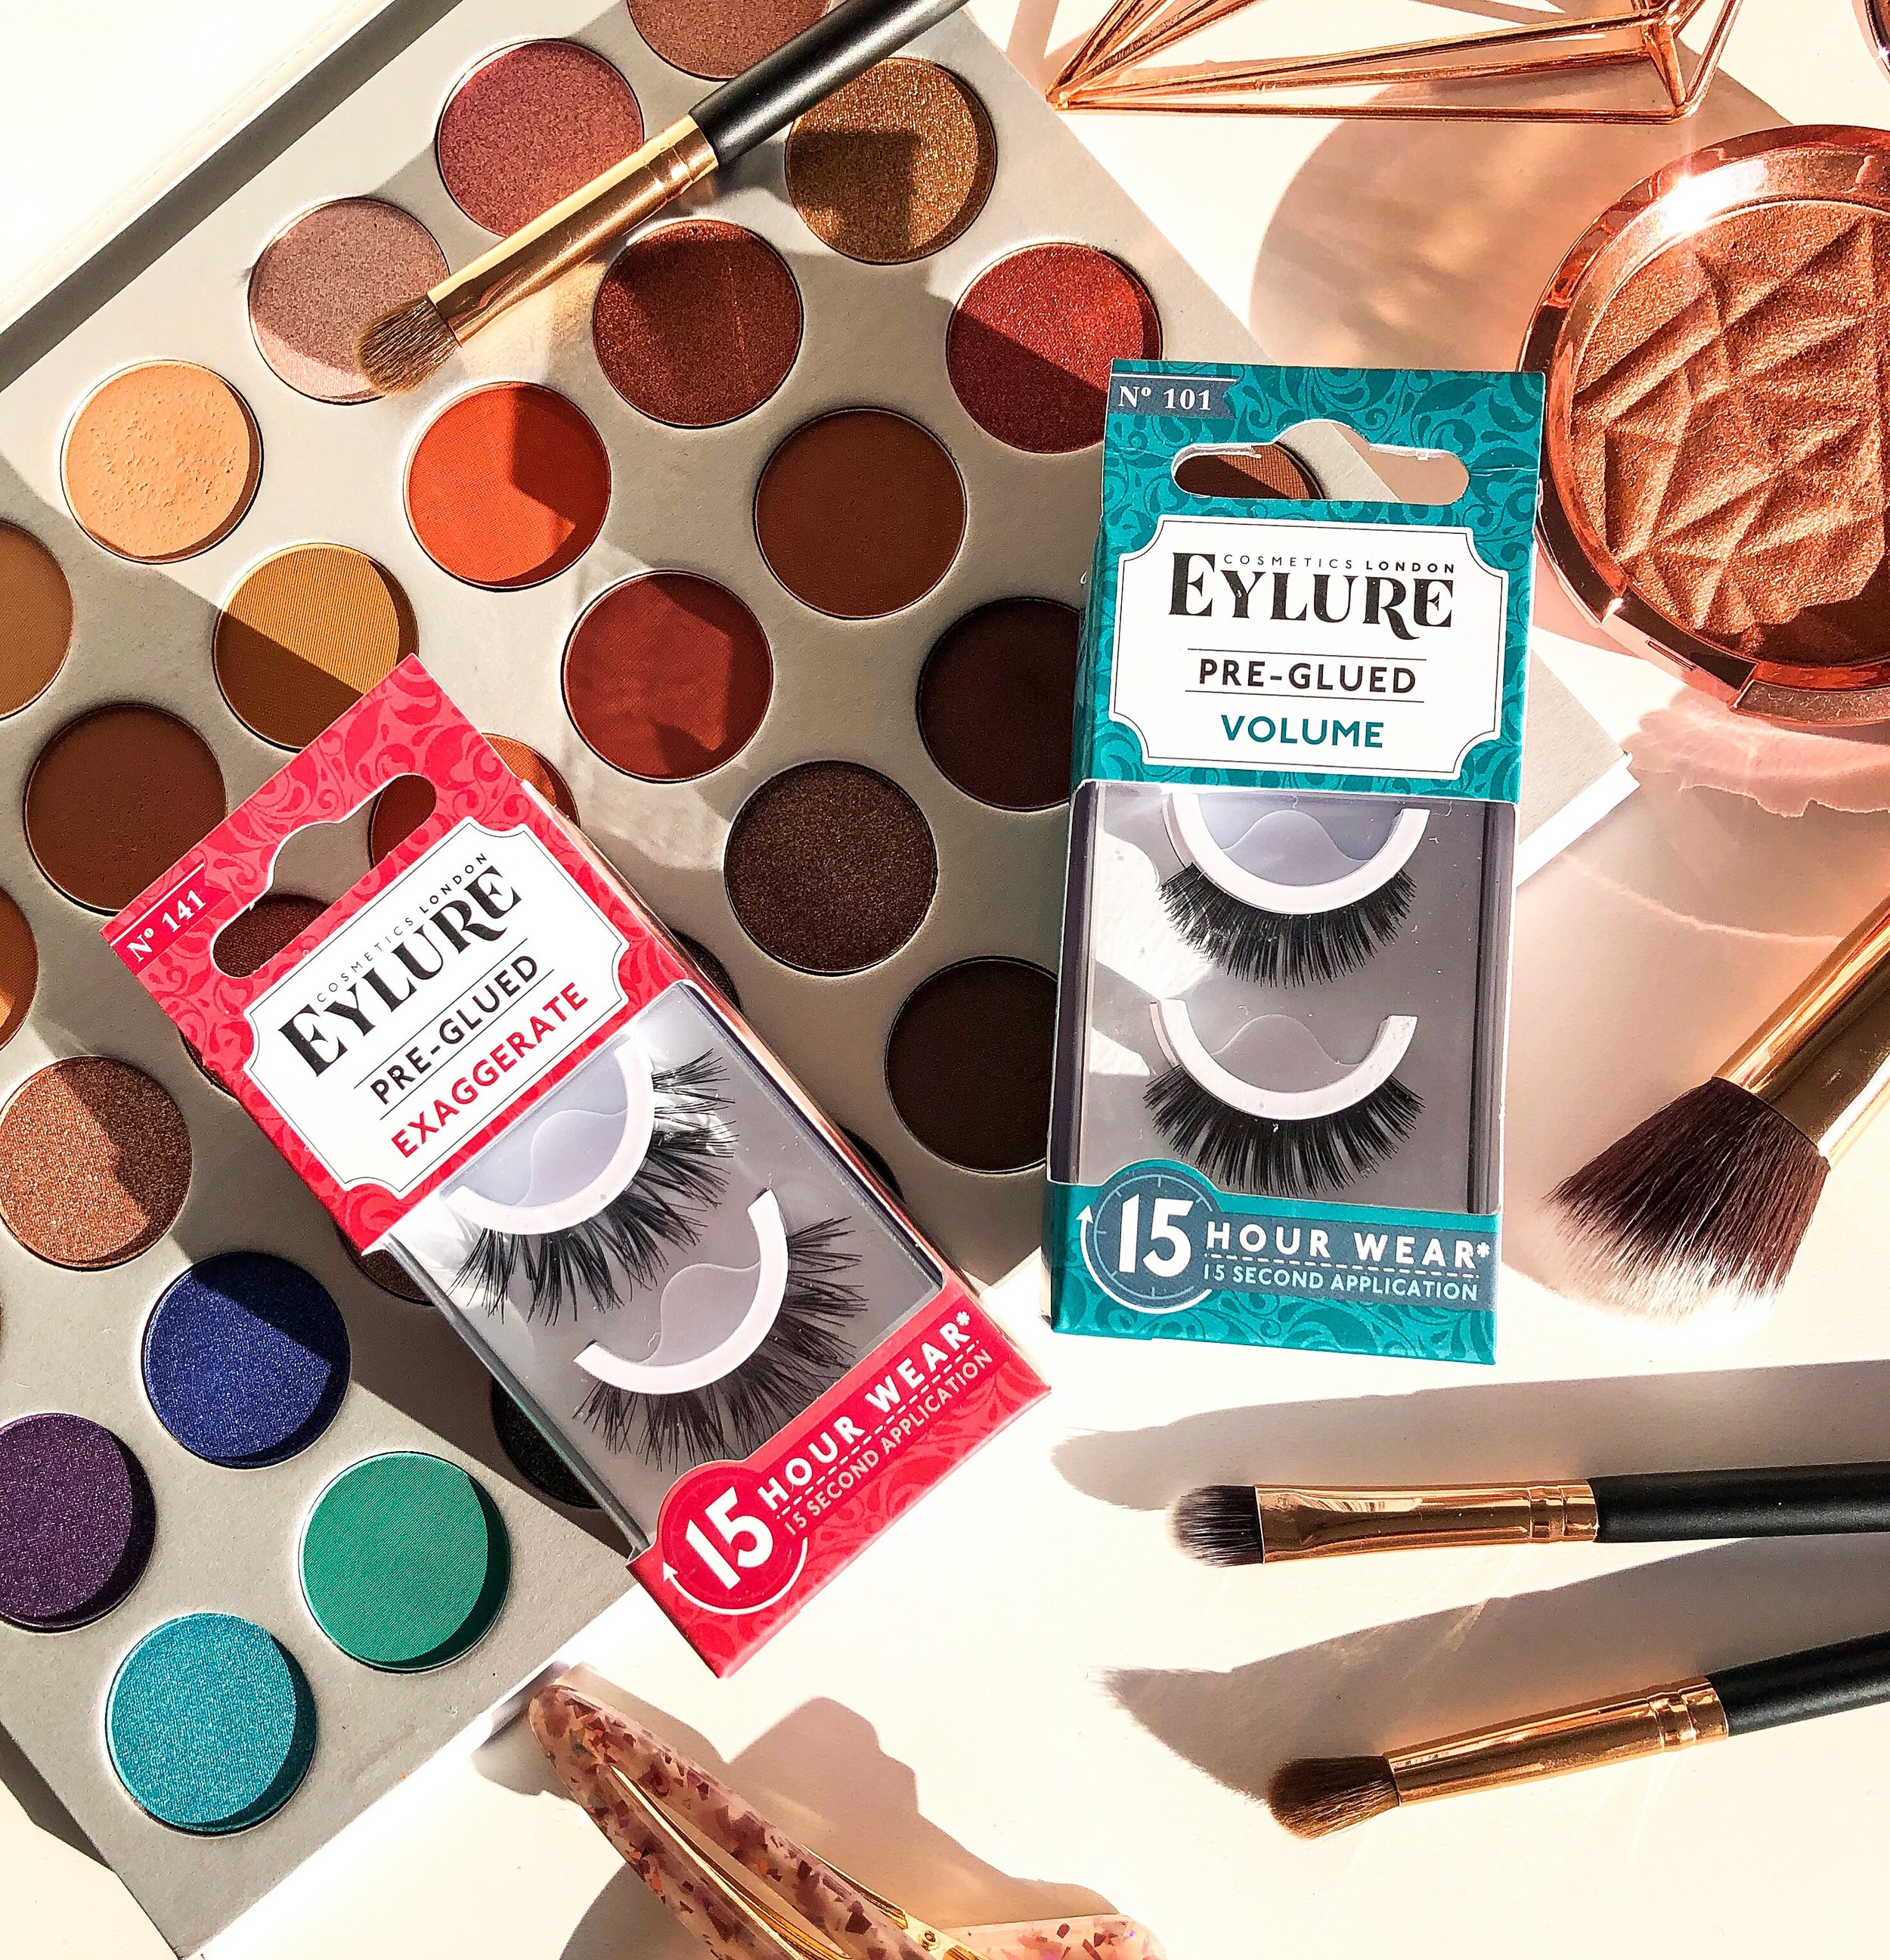 Eylure Pre Glued Lashes Review - Marisa Robinson Beauty